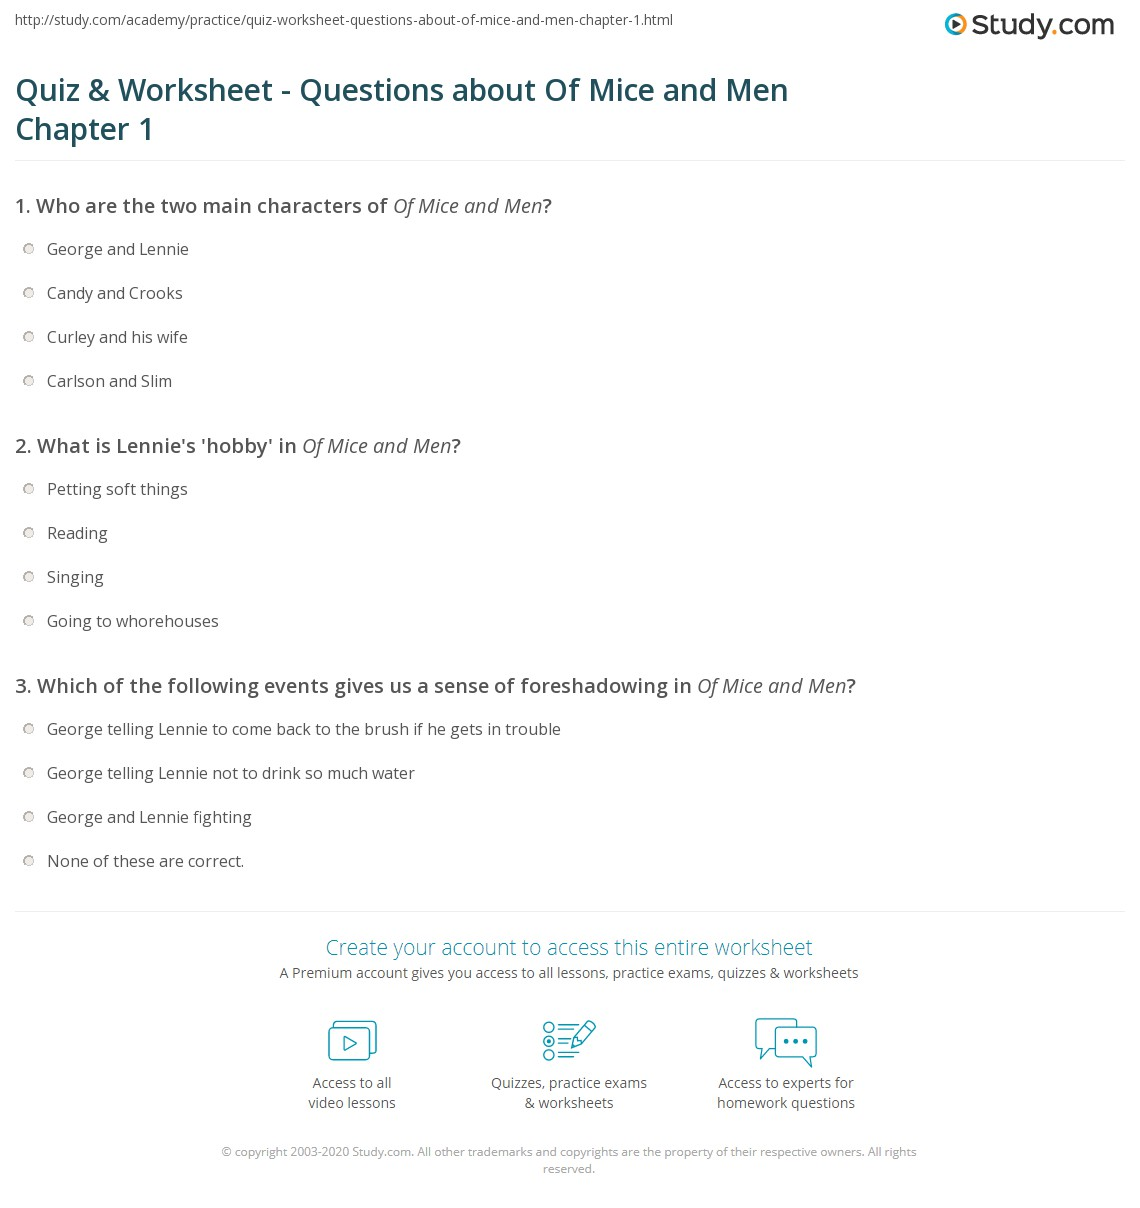 Of Mice And Men Quotes With Page Numbers New Quiz & Worksheet  Questions About Of Mice And Men Chapter 1